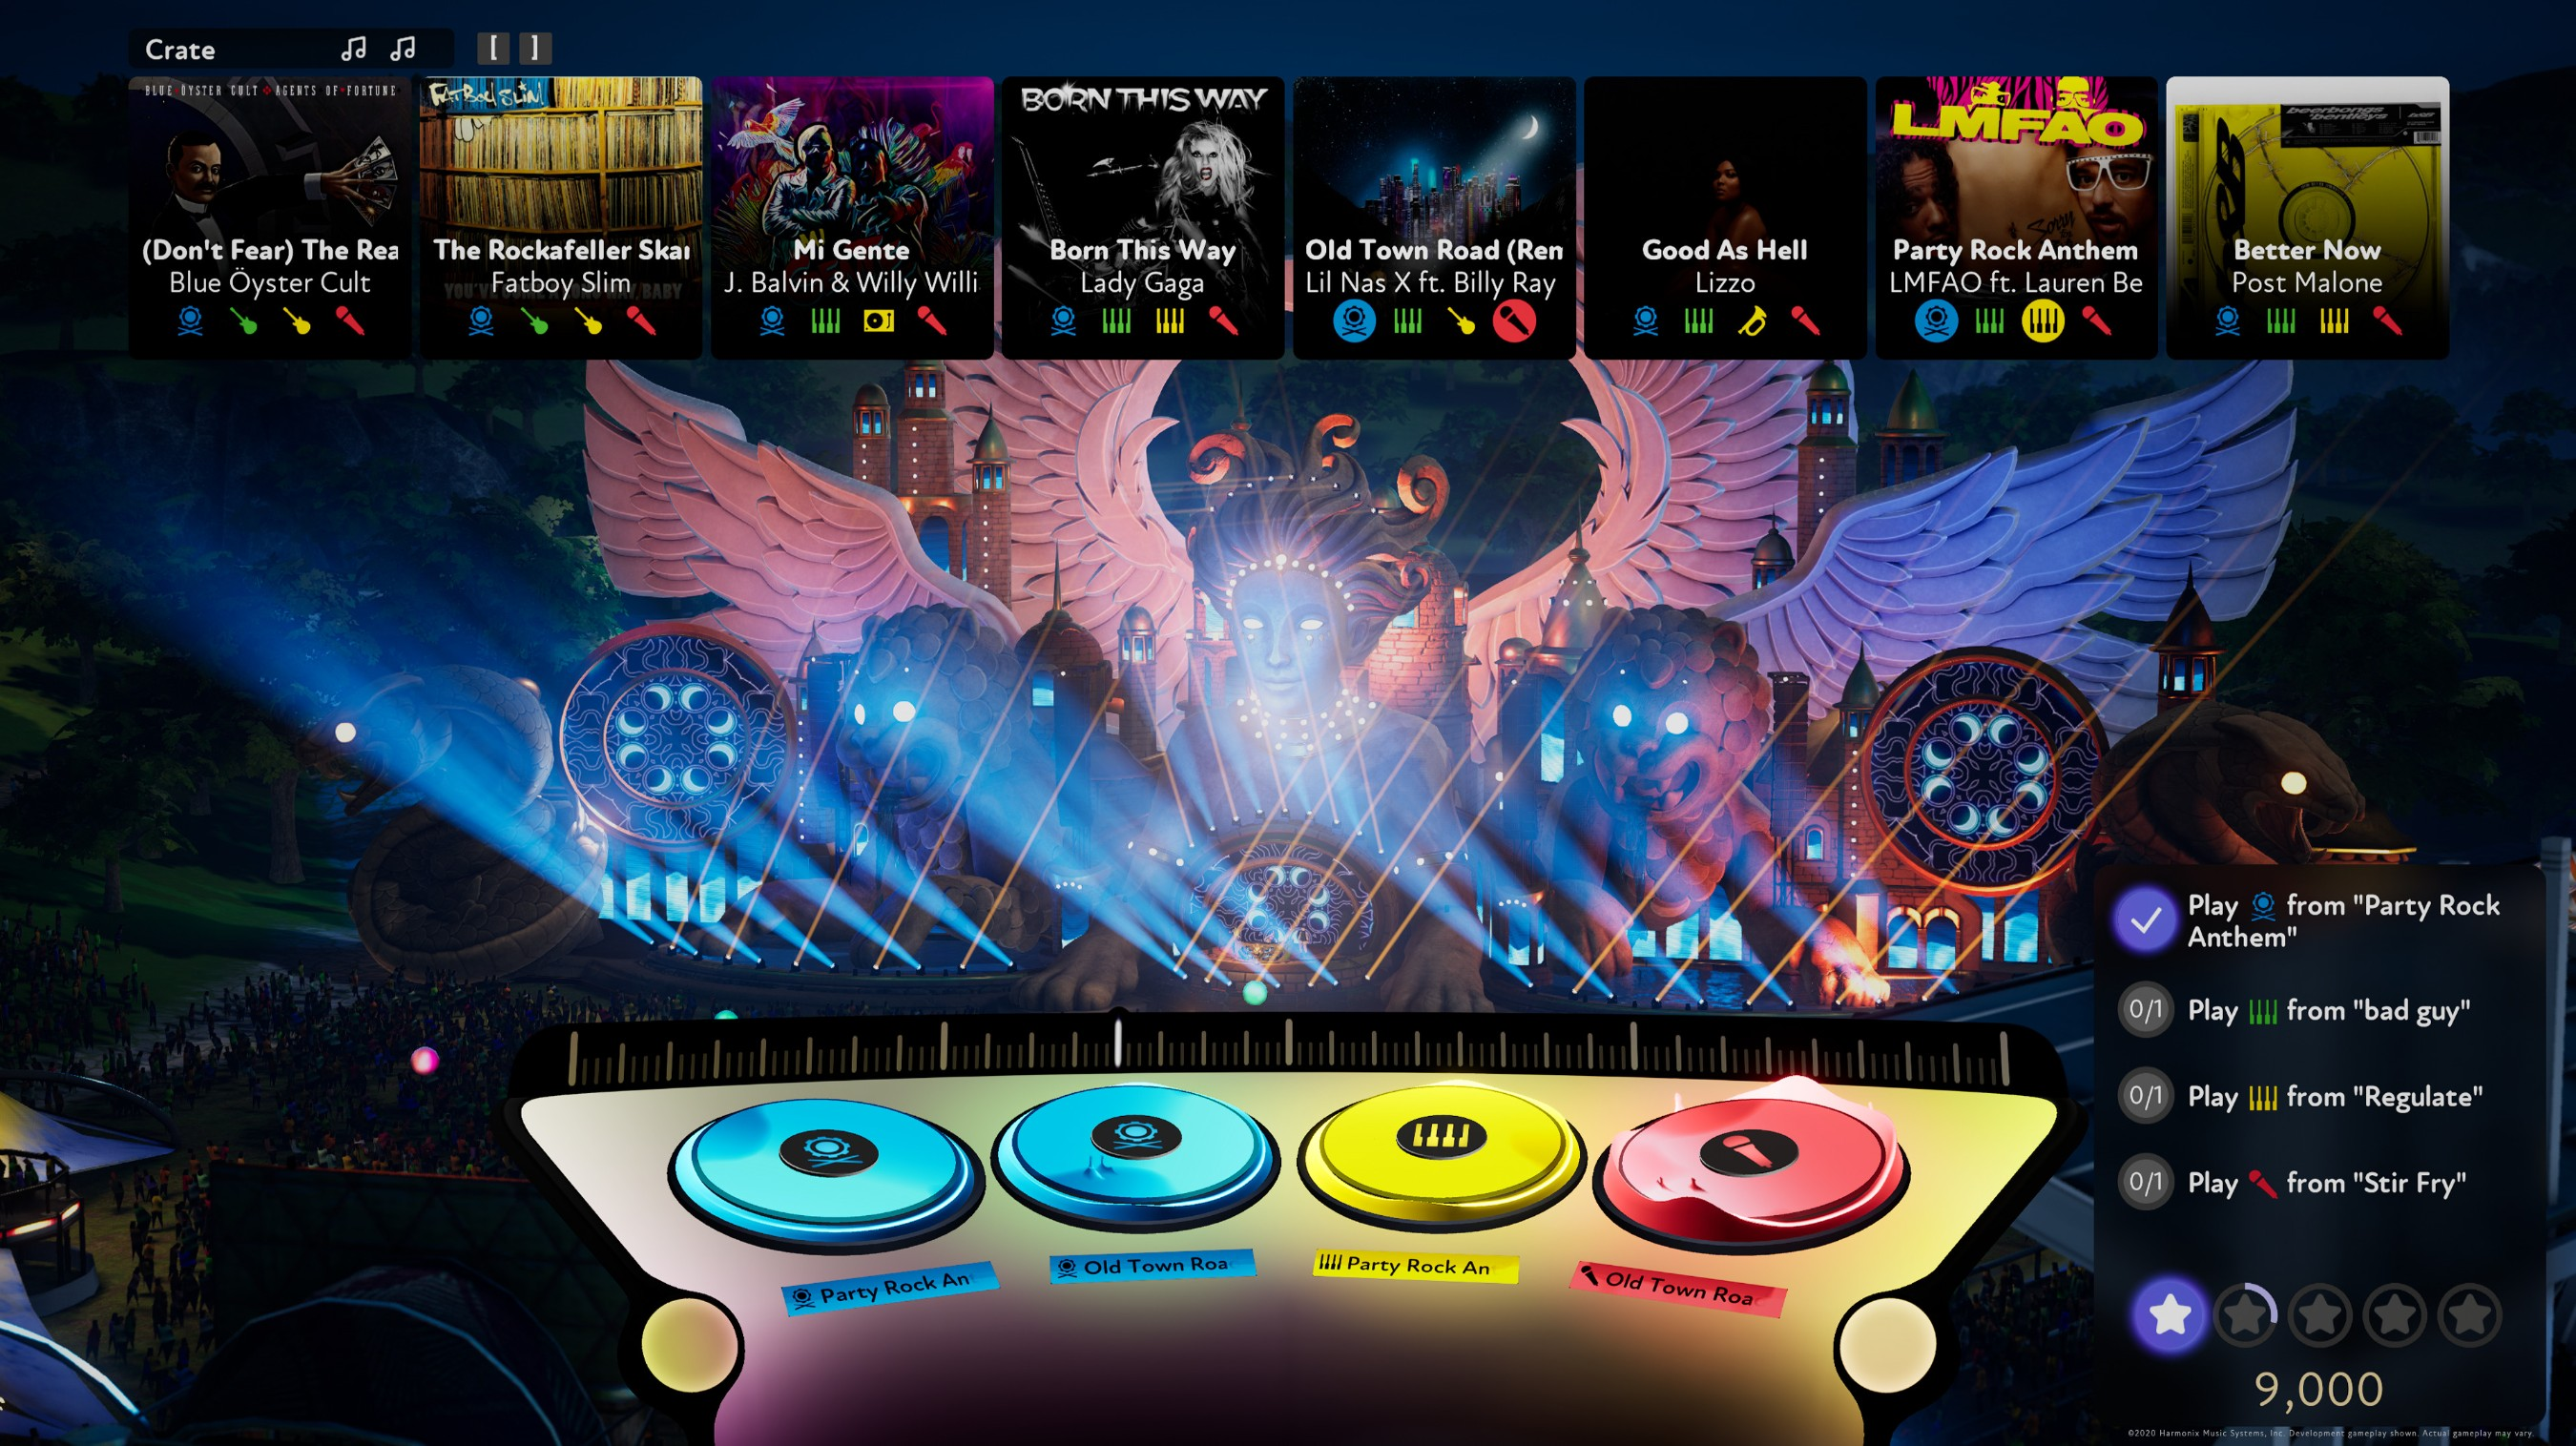 No peripheral or DJ experience required. Fuser's technology seamlessly blends loops, letting players show off mixing skills based on timing, freshness, and the ability to satisfy requests.